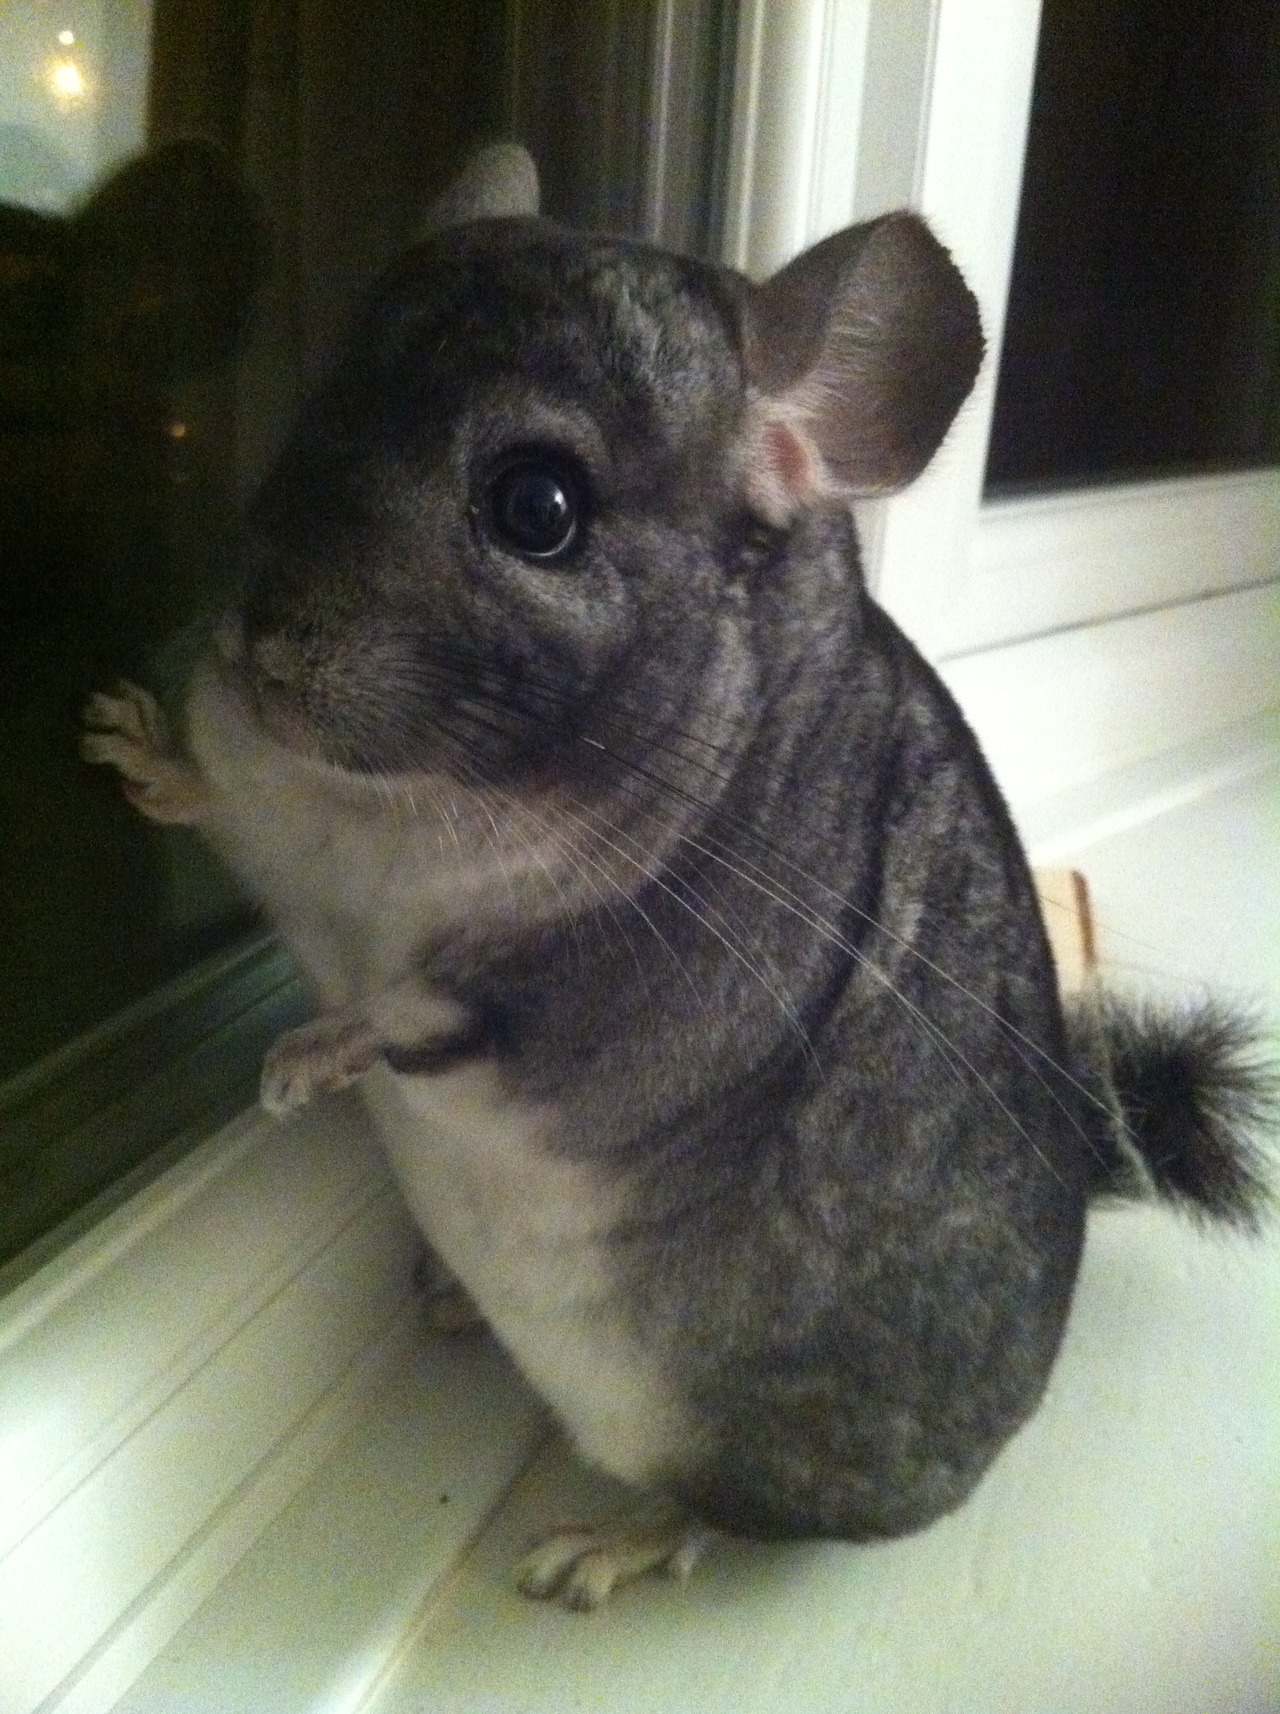 dailychinchilla:  This is my lovely chinchilla, Puffy! Every evening when we let him out and he's not chewing our house down or hopping around like mad, he sits on the windowsill and looks pensive. When someone walks past, he hops around a bit and preens. He absolutely loves attention! (via kerfufflesalot)